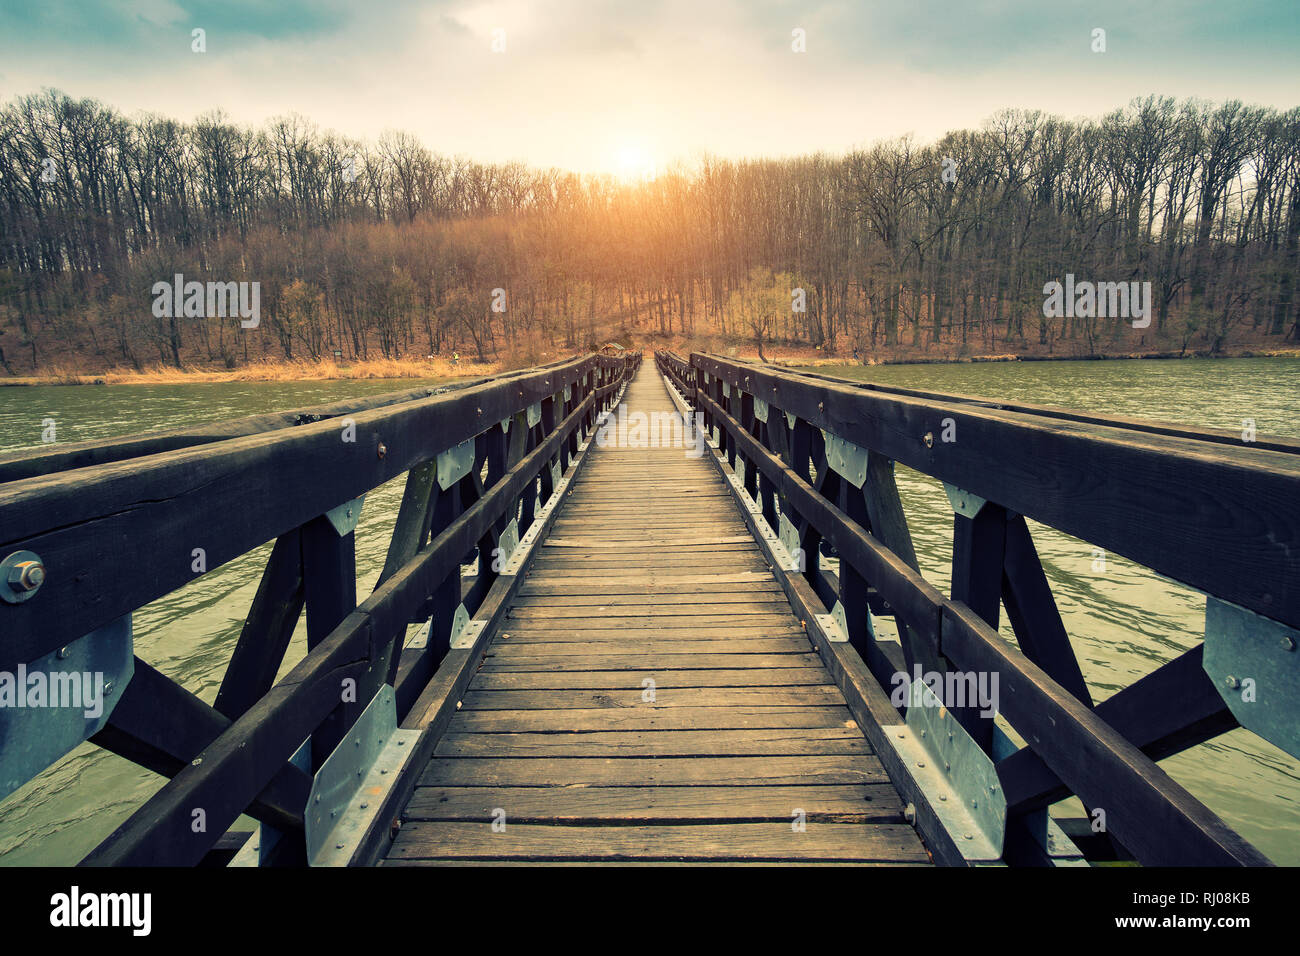 Footbridge vanishing point view - Stock Image